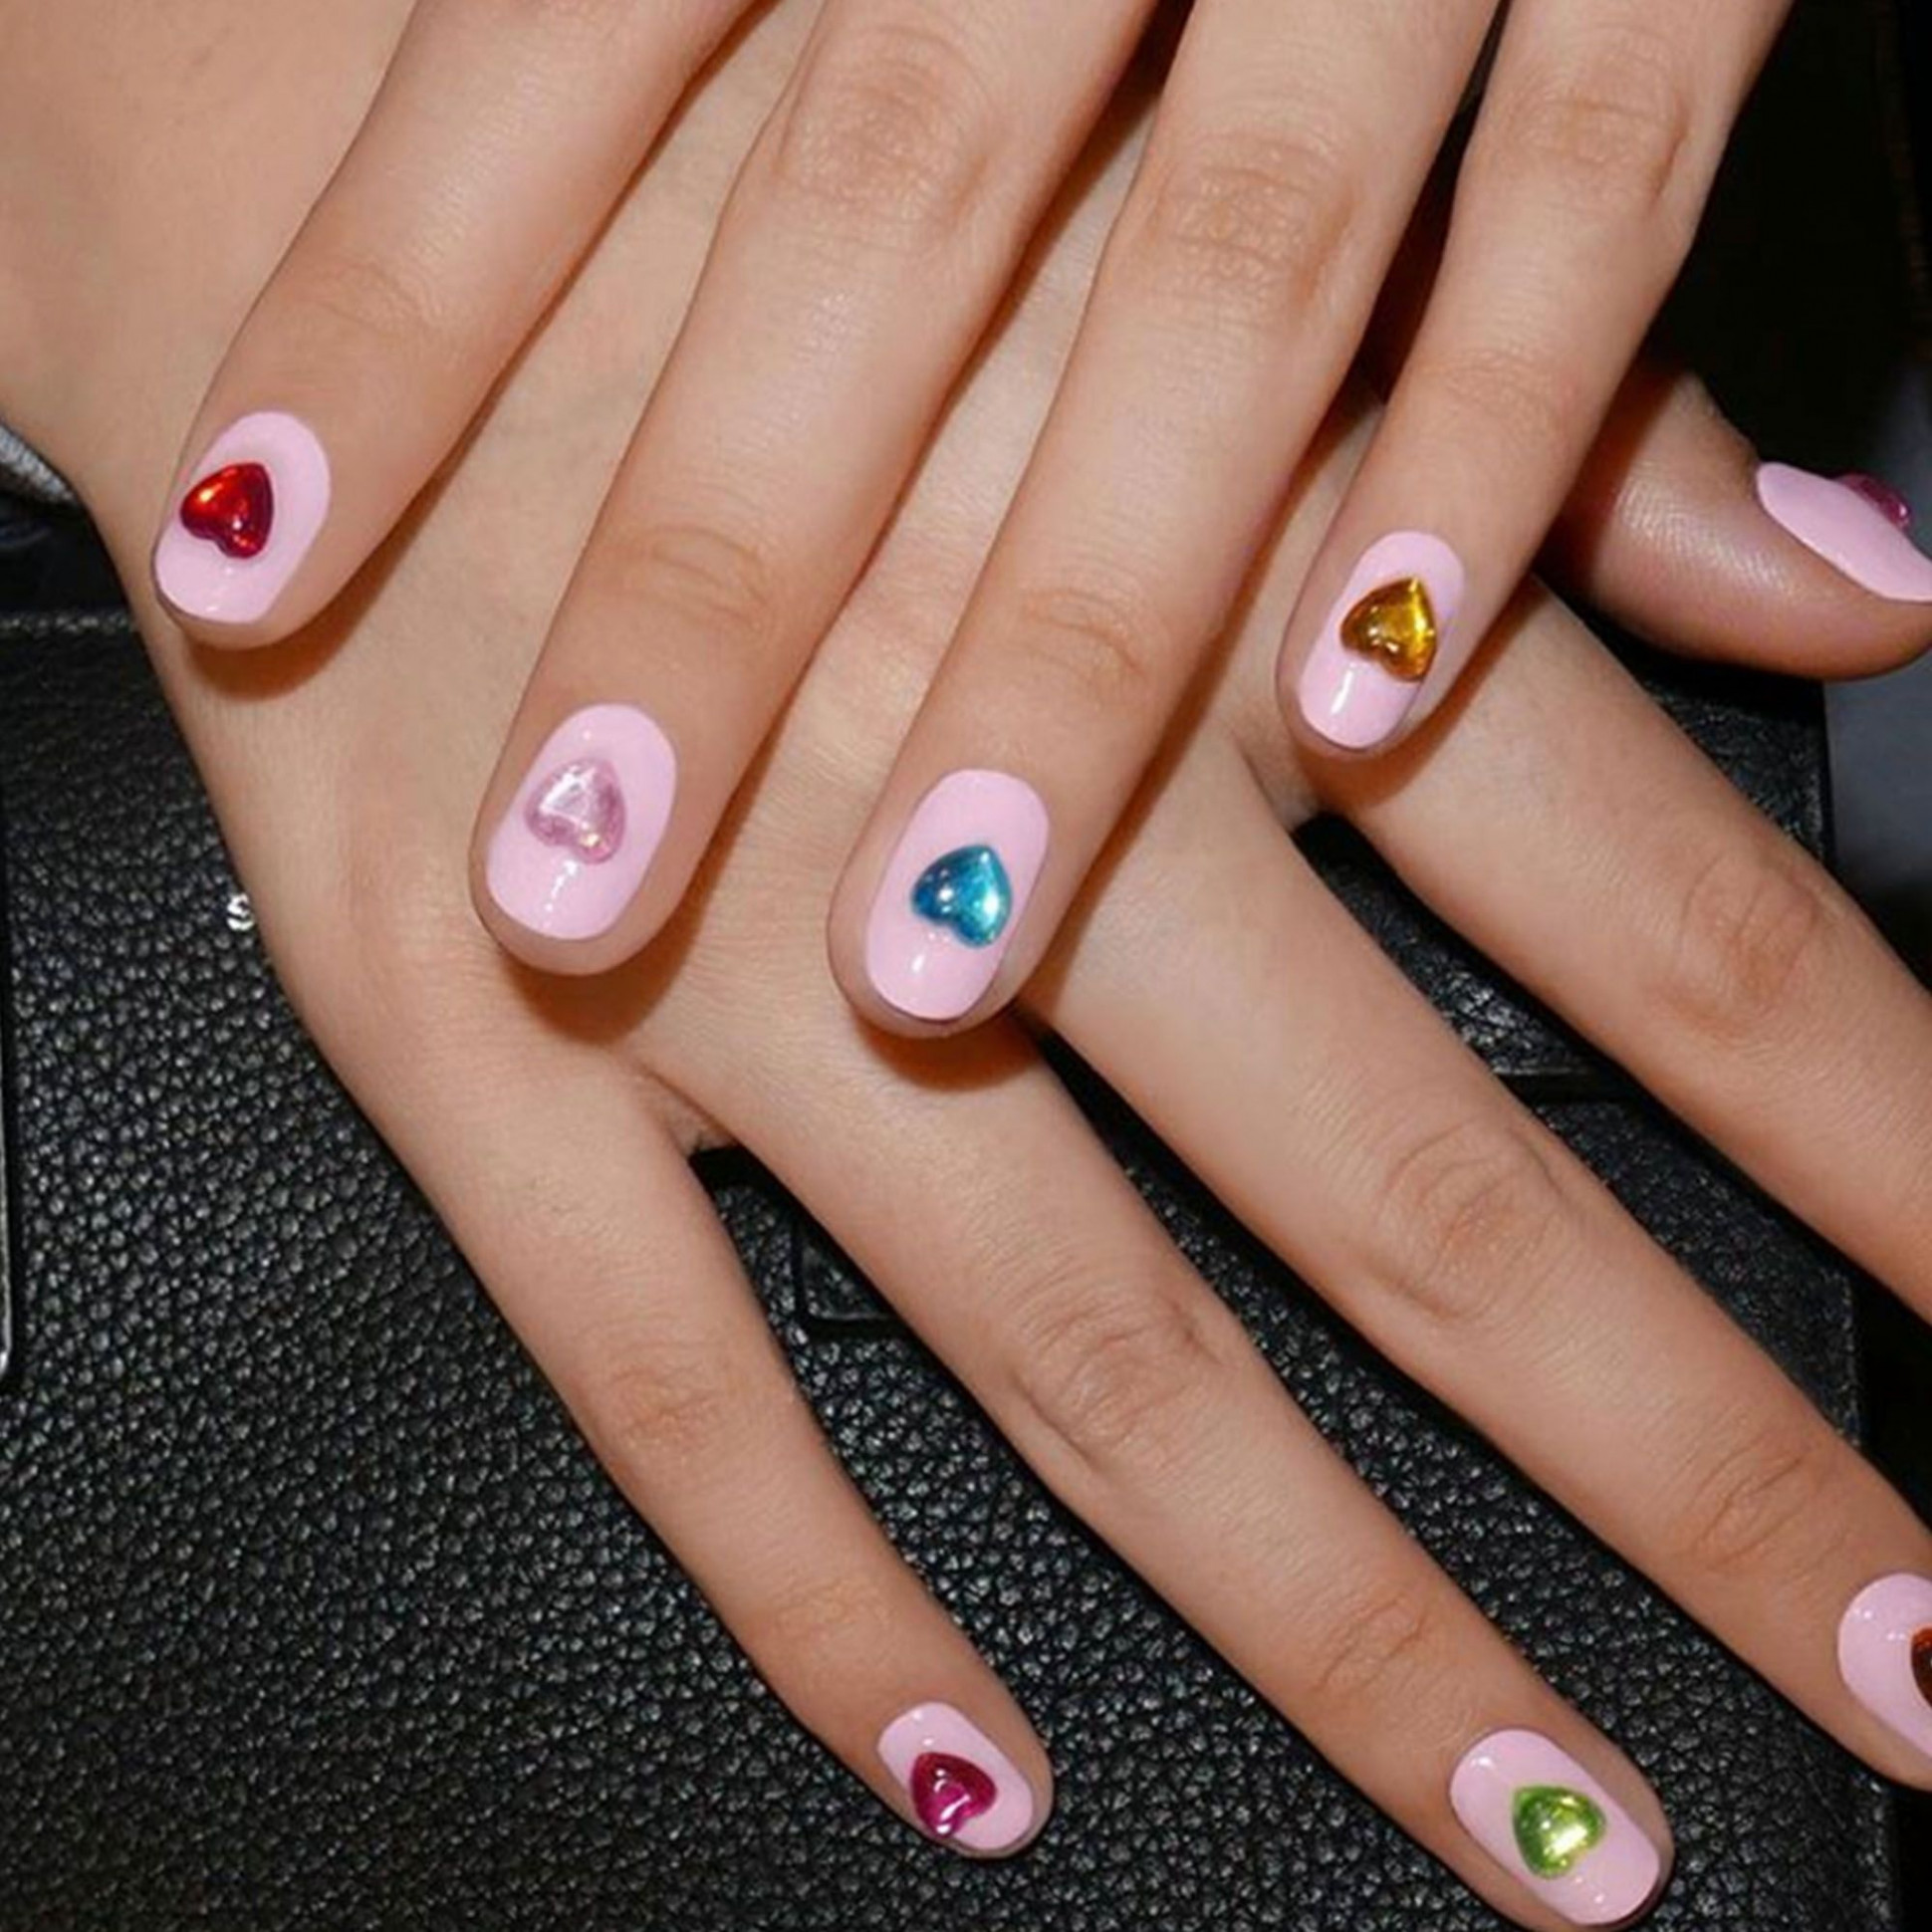 10 Spring Nail Art Designs - Nail Art Ideas for Spring 10 Manicures